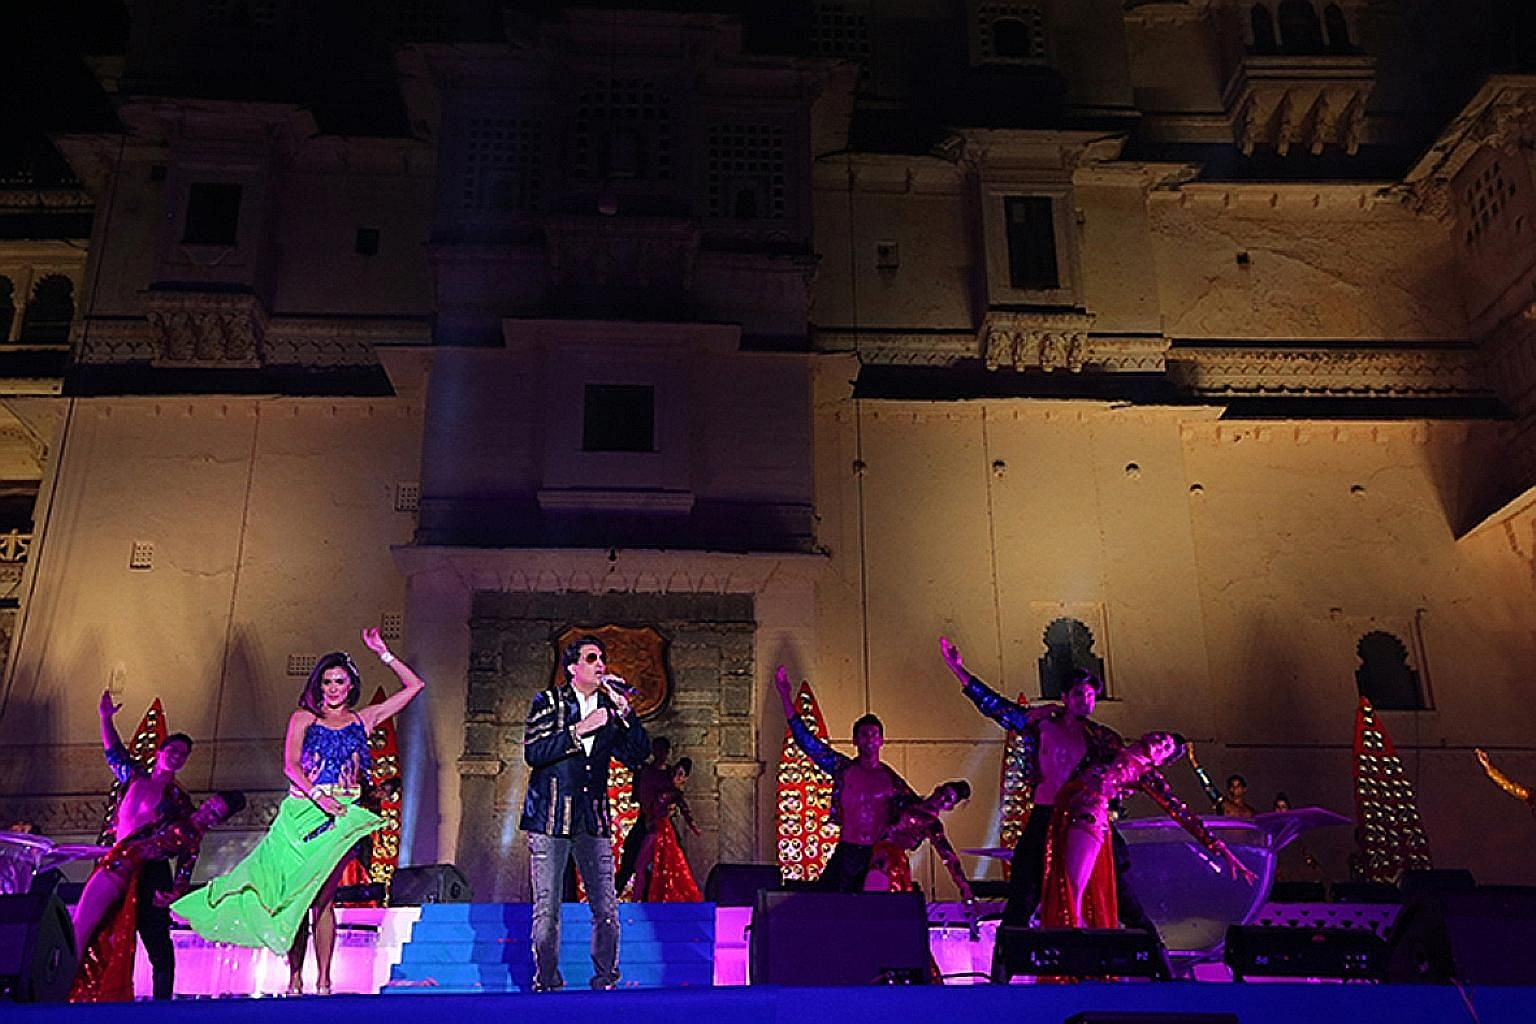 Indian celebrity Shiamak Davar (above) performing at Udaipur's City Palace during the wedding of businessman Binod Chaudhary's son, Varun, and his bride, Anushree (right). Around 2,000 guests were whisked to the Rajasthan lake city on chartered fligh